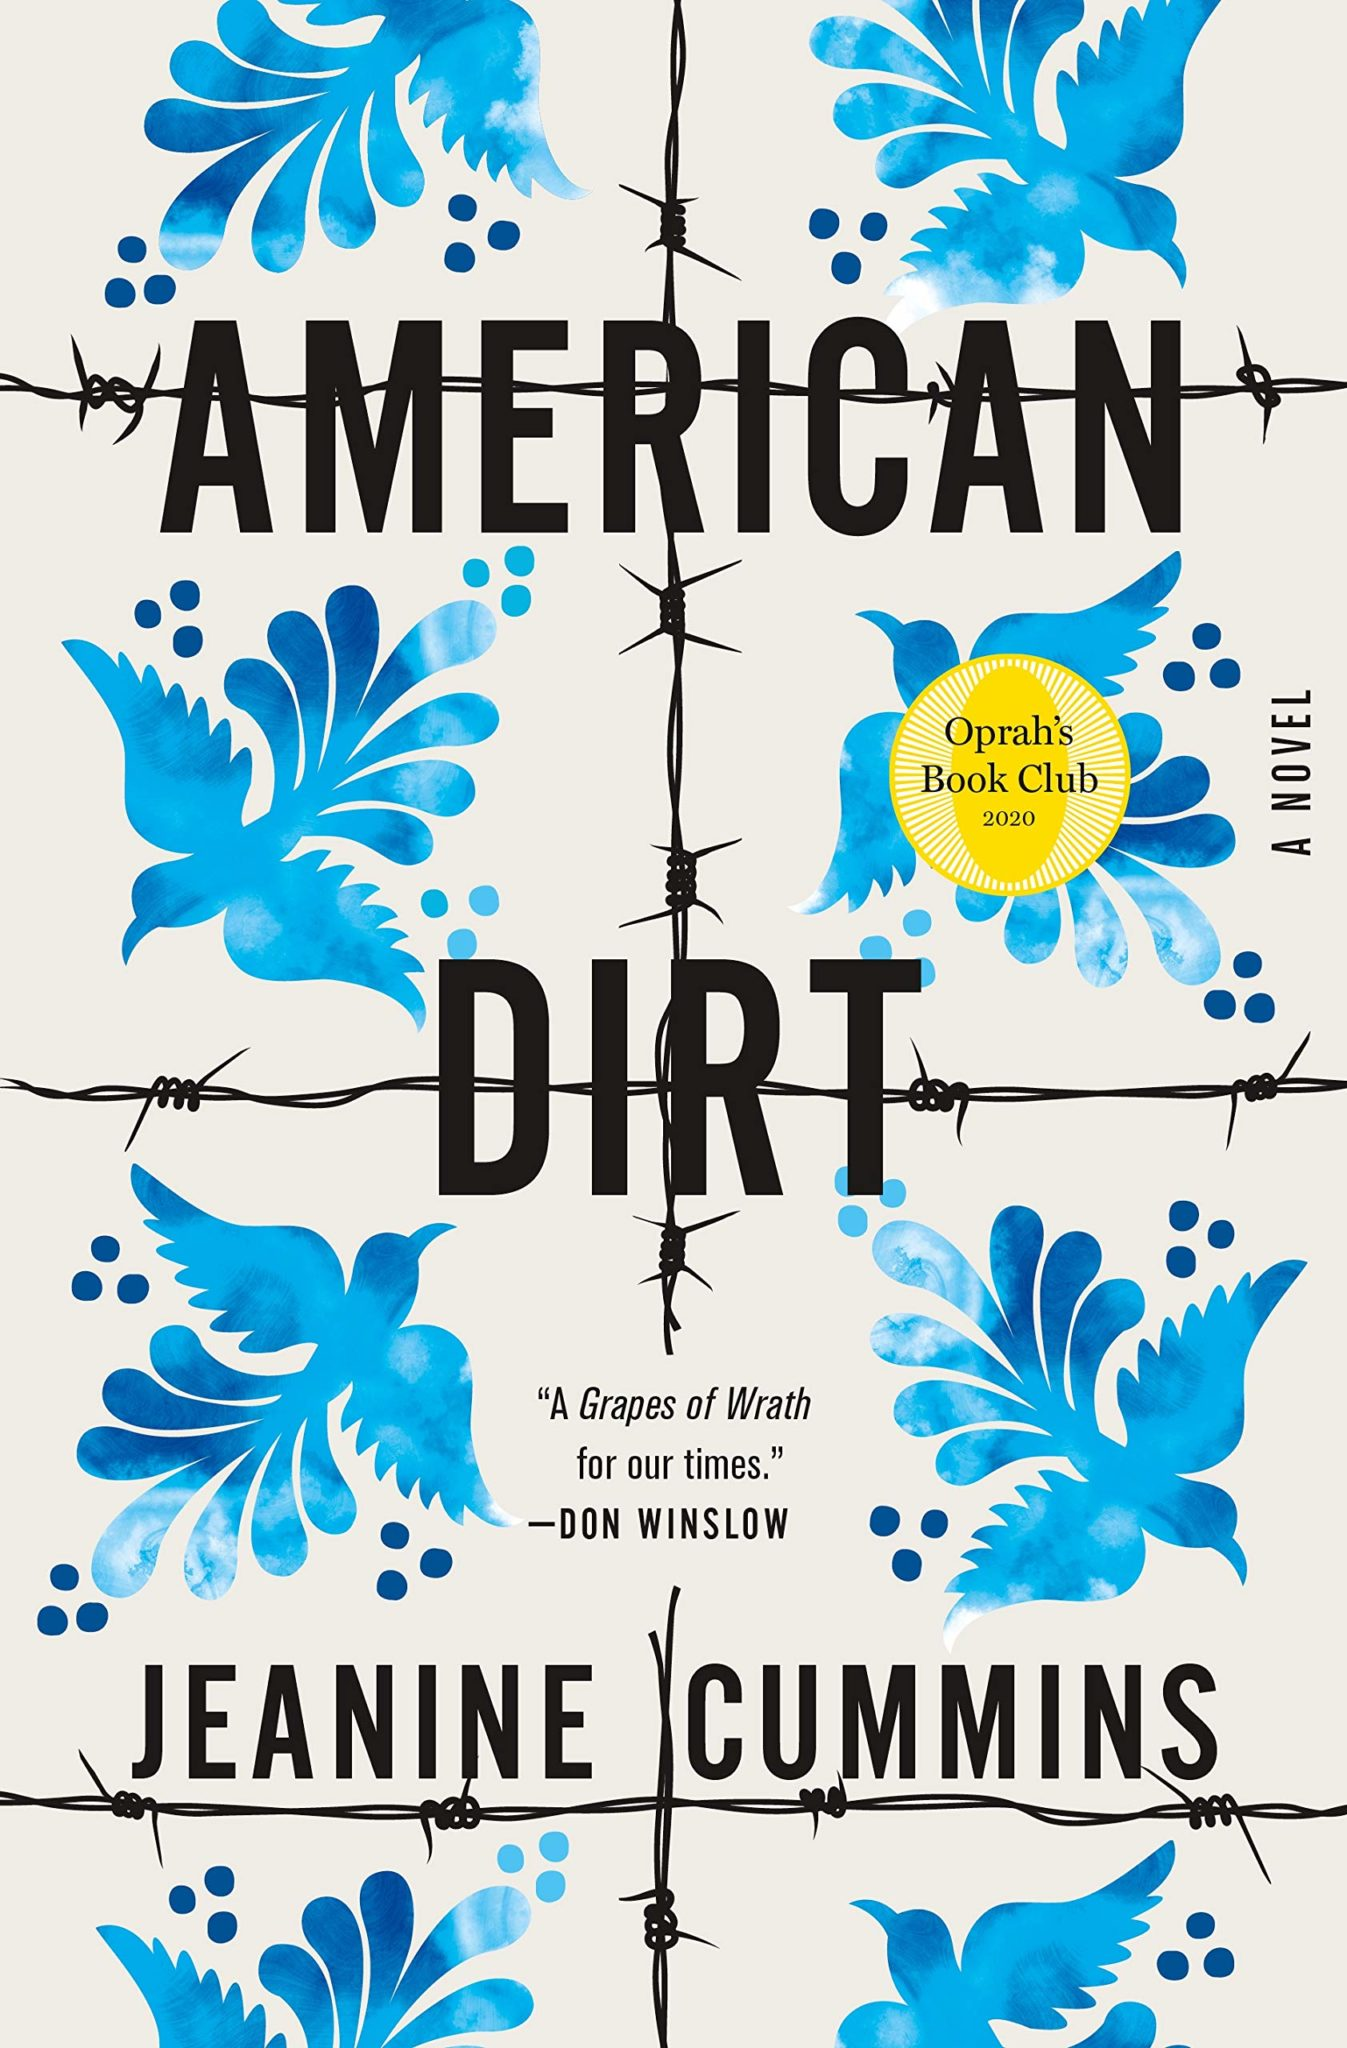 Books I Read in March 2020 - American Dirt by Jeanine Cummins | Rhyme & Reason